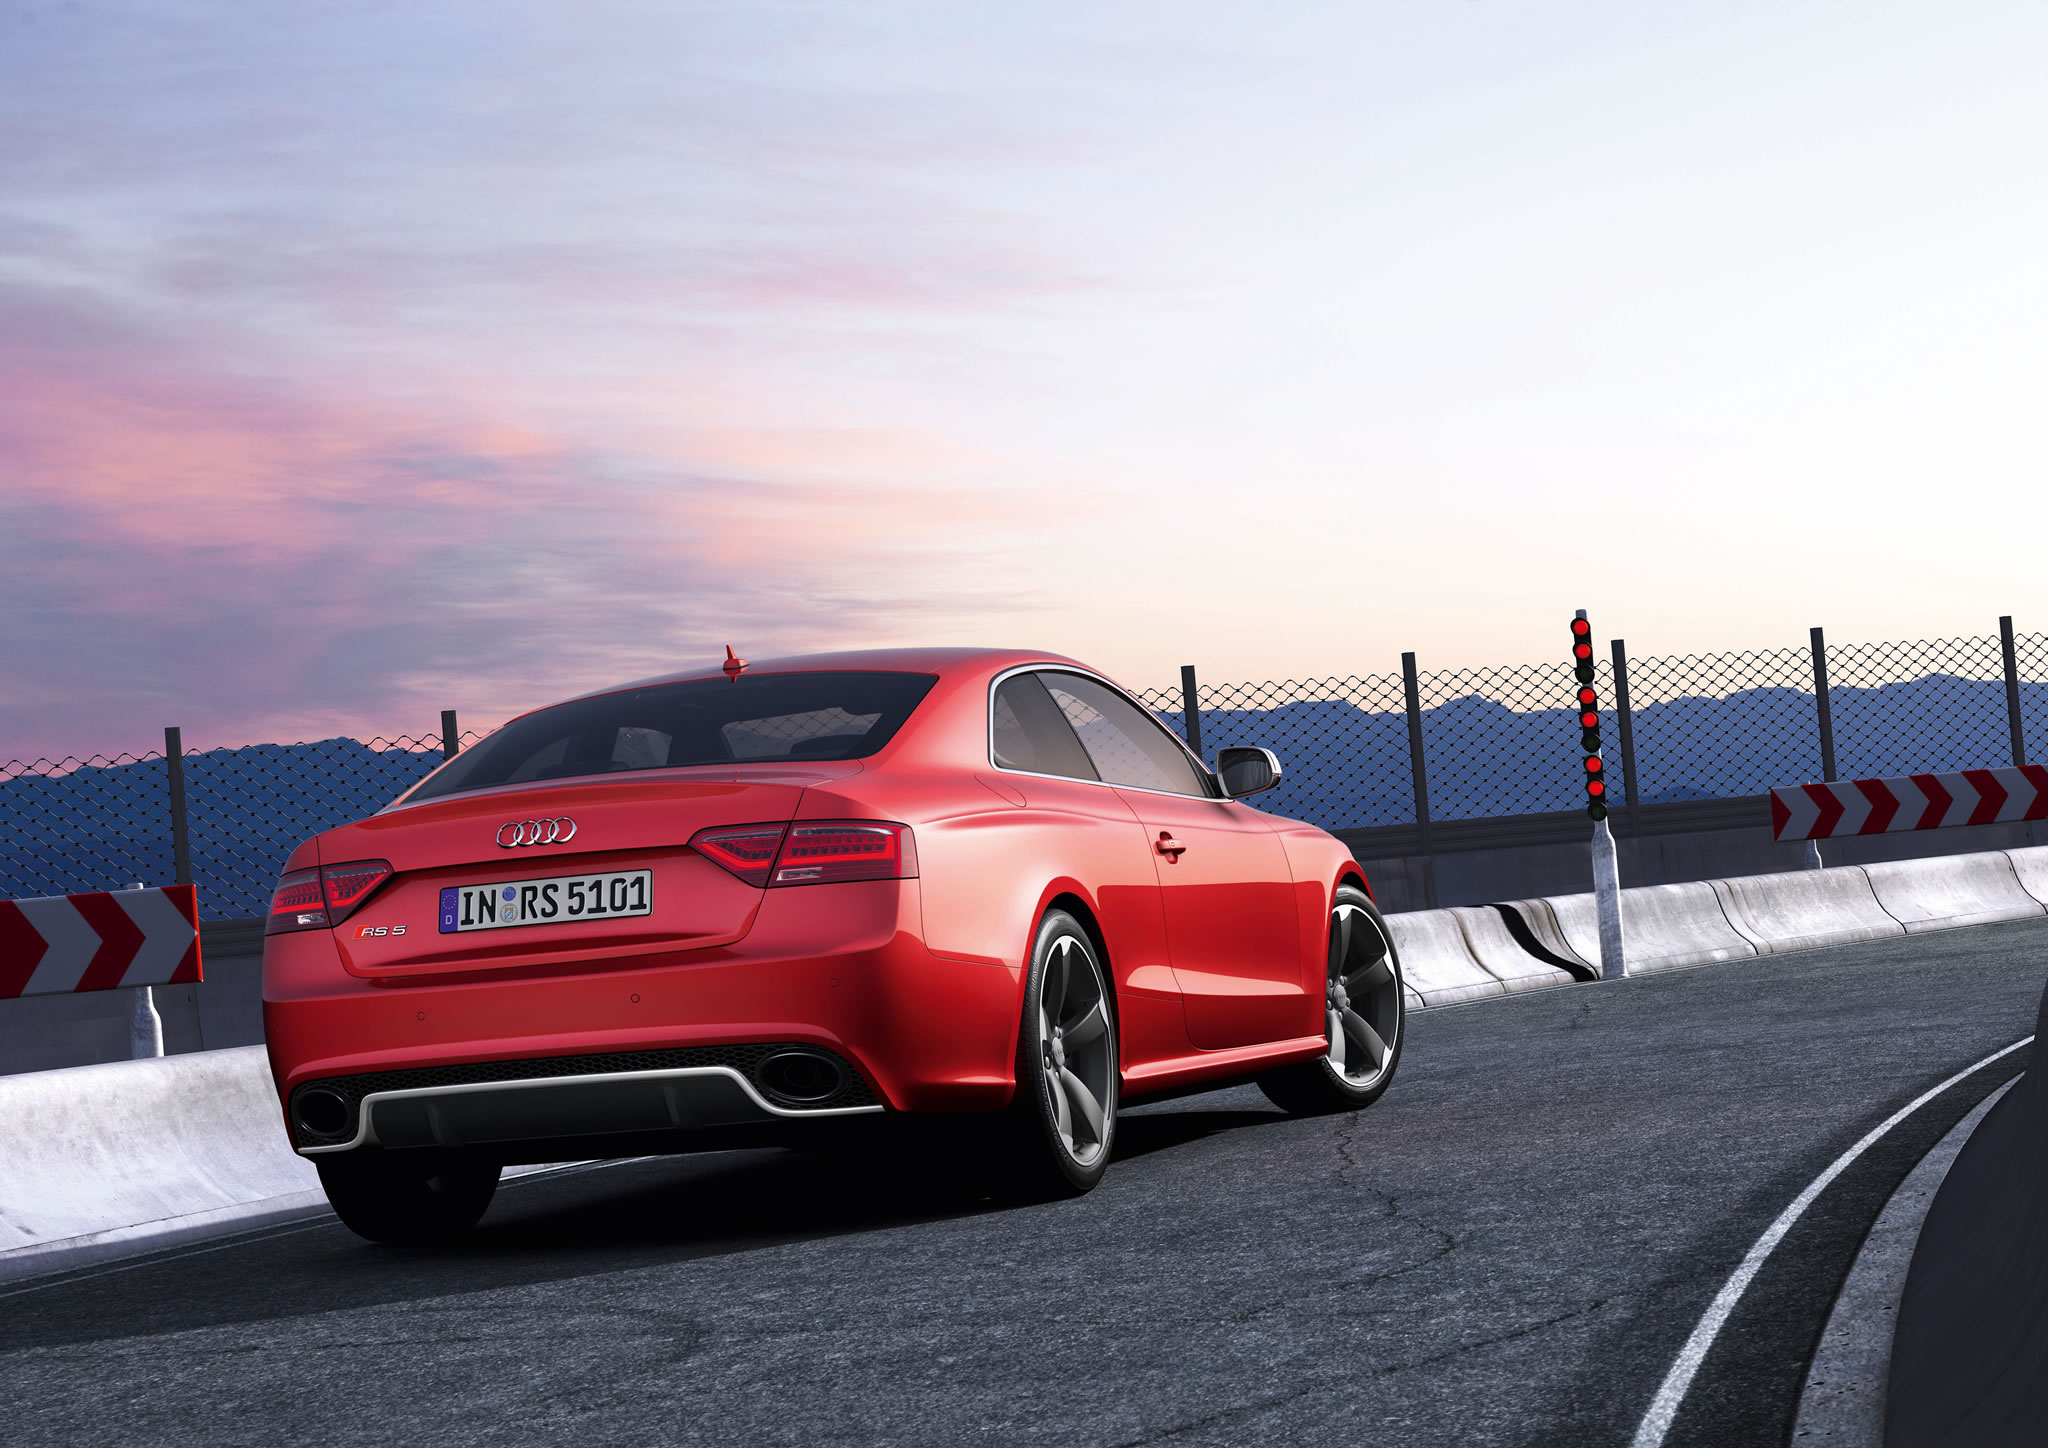 2014 audi rs 5 coupe rear photo misano red color static size 2048 x 1448 nr 33 49. Black Bedroom Furniture Sets. Home Design Ideas